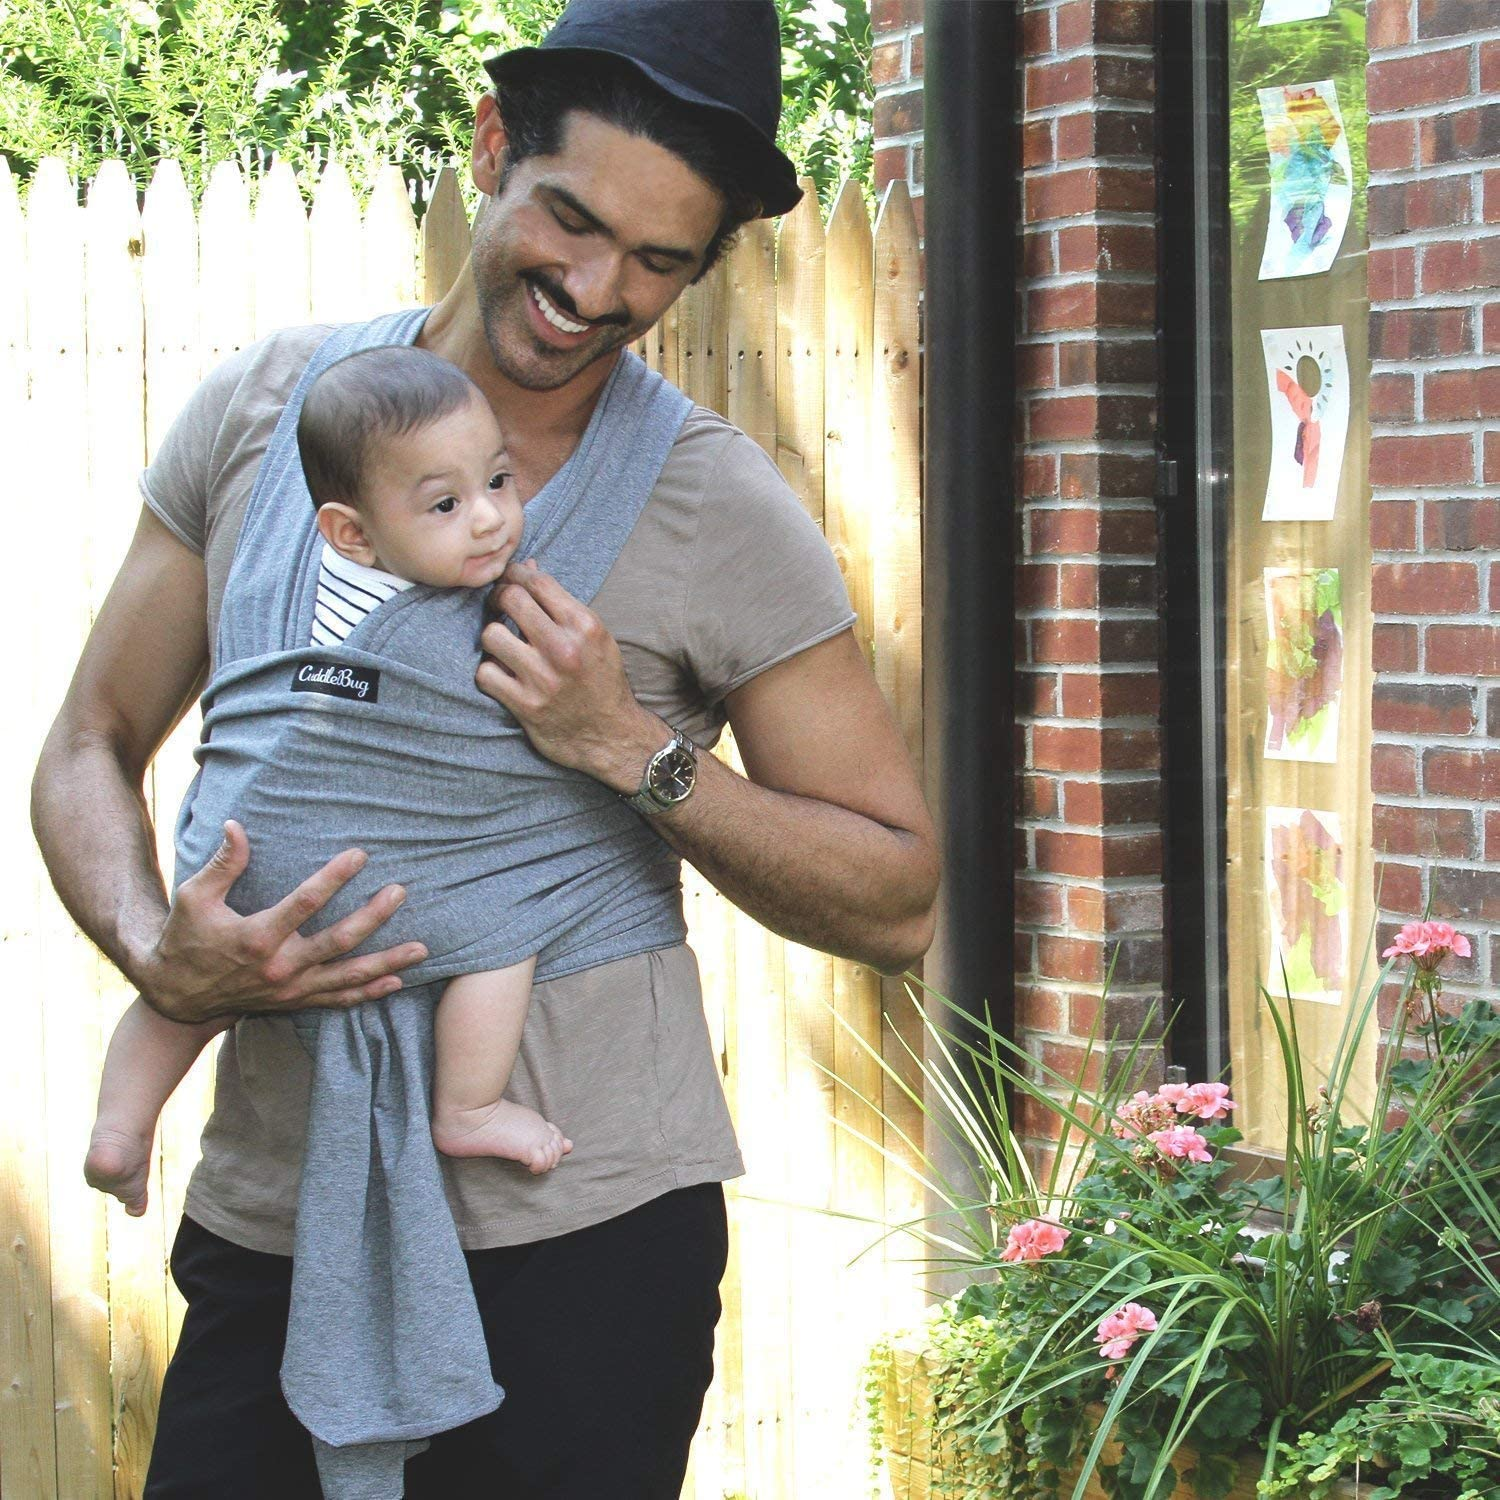 Baby Wrap ALL NATURAL BABY CARRIER- One Size Fits All Free Shipping Blue CuddleBug Baby Wrap Carrier LIFETIME GUARANTEE Money Back Guarantee